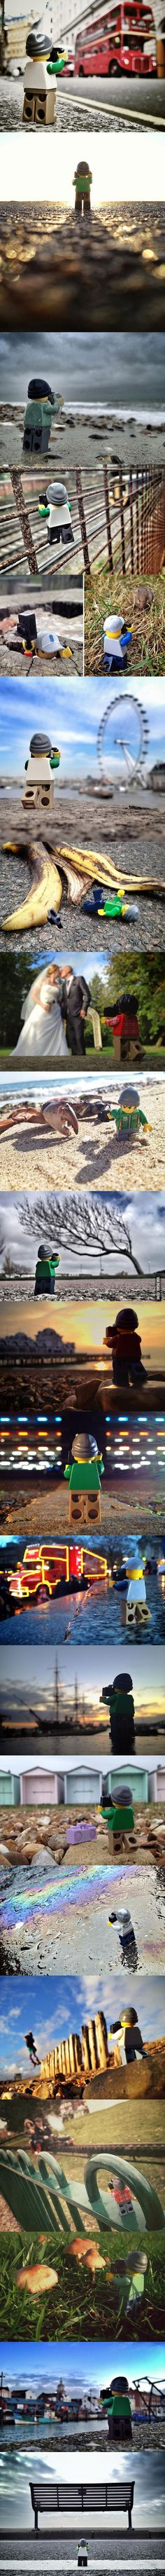 Funny pictures about LEGO Photographer Travels The World. Oh, and cool pics about LEGO Photographer Travels The World. Also, LEGO Photographer Travels The World photos.